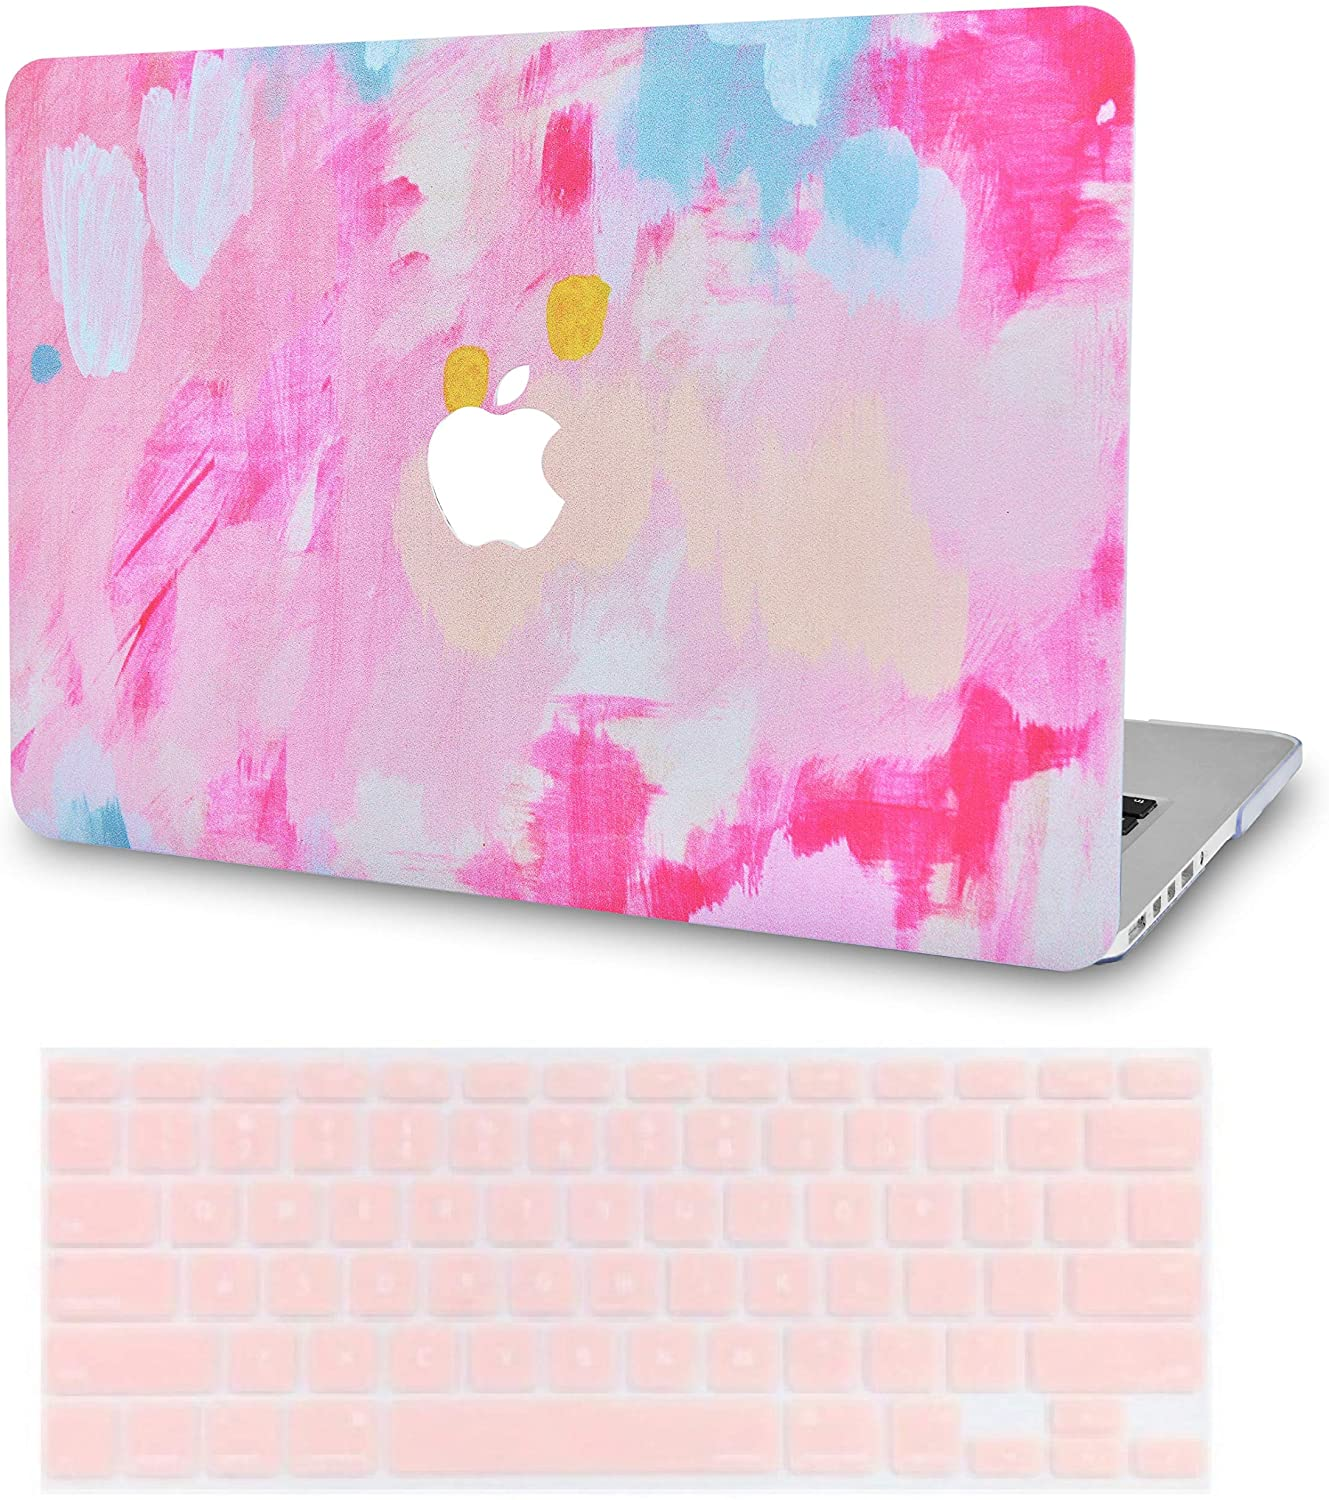 LuvCase2in1LaptopCaseforMacBookAir 13 Inch A1466/A1369 (No Touch ID)(2010-2017)RubberizedPlasticHardShellCover &KeyboardCover (Pink Mist 2)